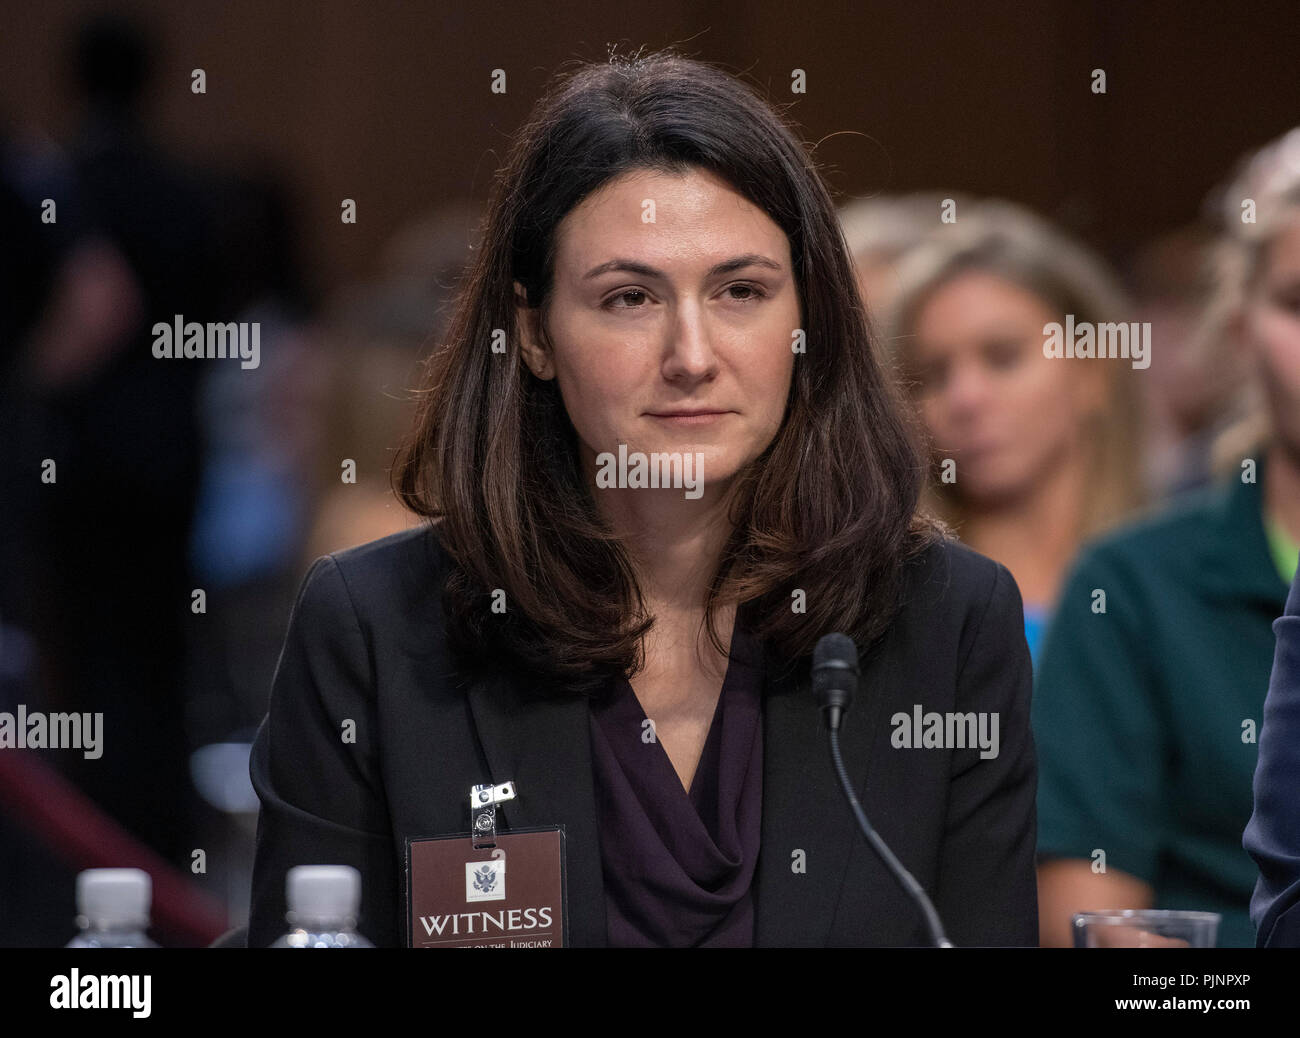 Washington, USA. 7th September 2018. Professor Rebecca Ingber, Associate Professor of Law Boston University School of Law, Boston, Massachusetts, testifies against the nomination of Judge Brett Kavanaugh before the US Senate Judiciary Committee on his nomination as Associate Justice of the US Supreme Court to replace the retiring Justice Anthony Kennedy on Capitol Hill in Washington, DC on Friday, September 7, 2018. Credit: Ron Sachs/CNP /MediaPunch Credit: MediaPunch Inc/Alamy Live News - Stock Image